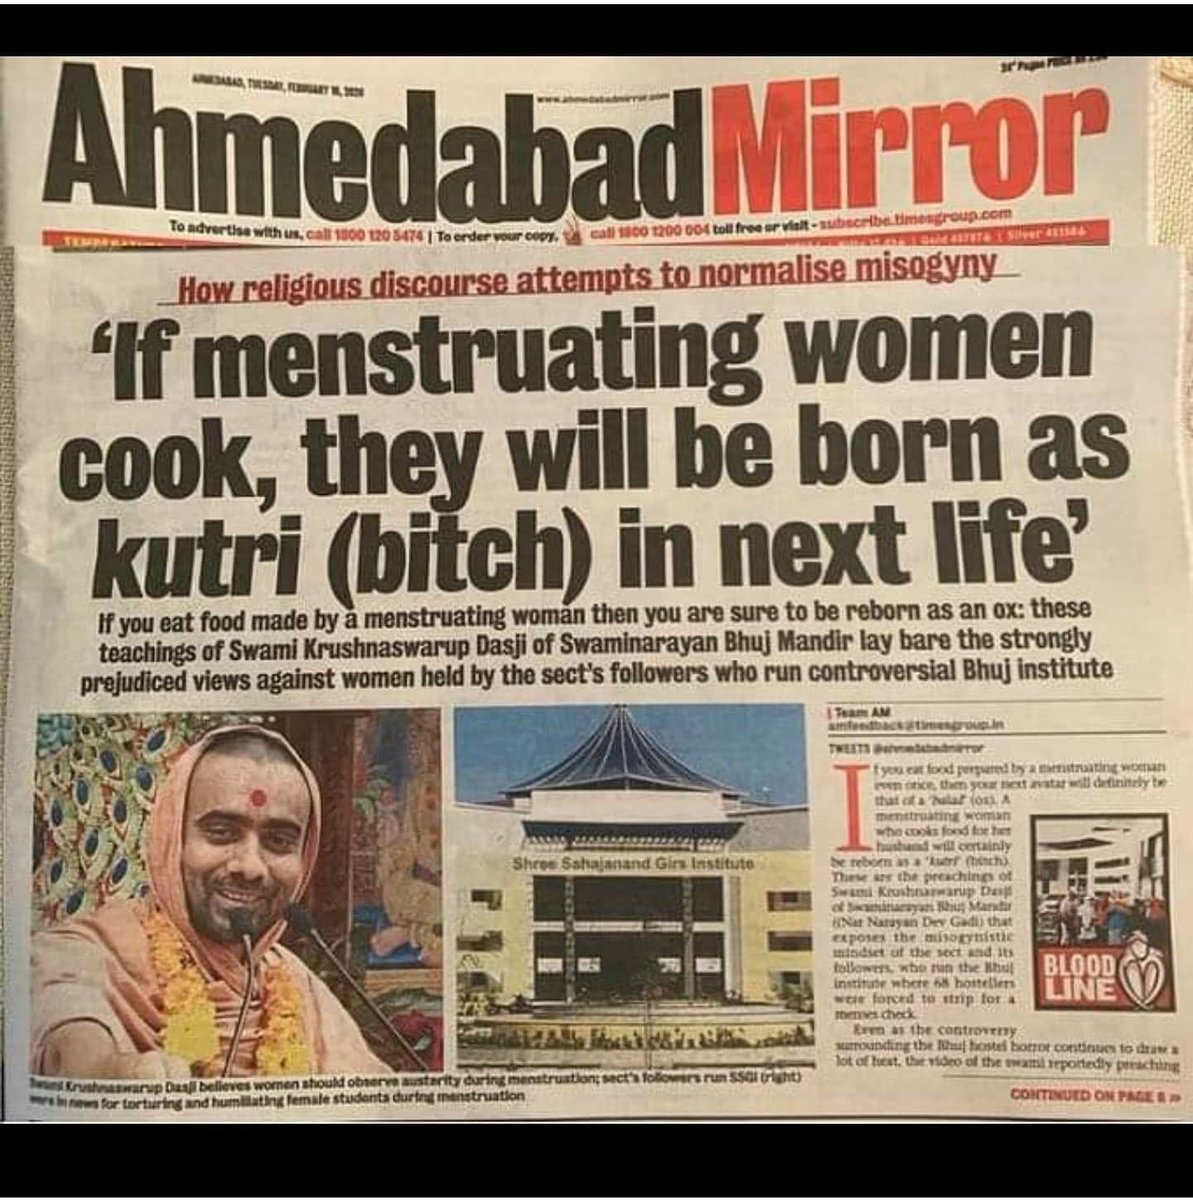 Now This! The Constitution of India prohibits discrimination against women and yet these abhorrent practices around menstruation continues. If you think this needs to stop, express your support. #menstruationmatters@goonj @IJaising @karunanundy @Nidhi @fayedsouza @unwomenindia